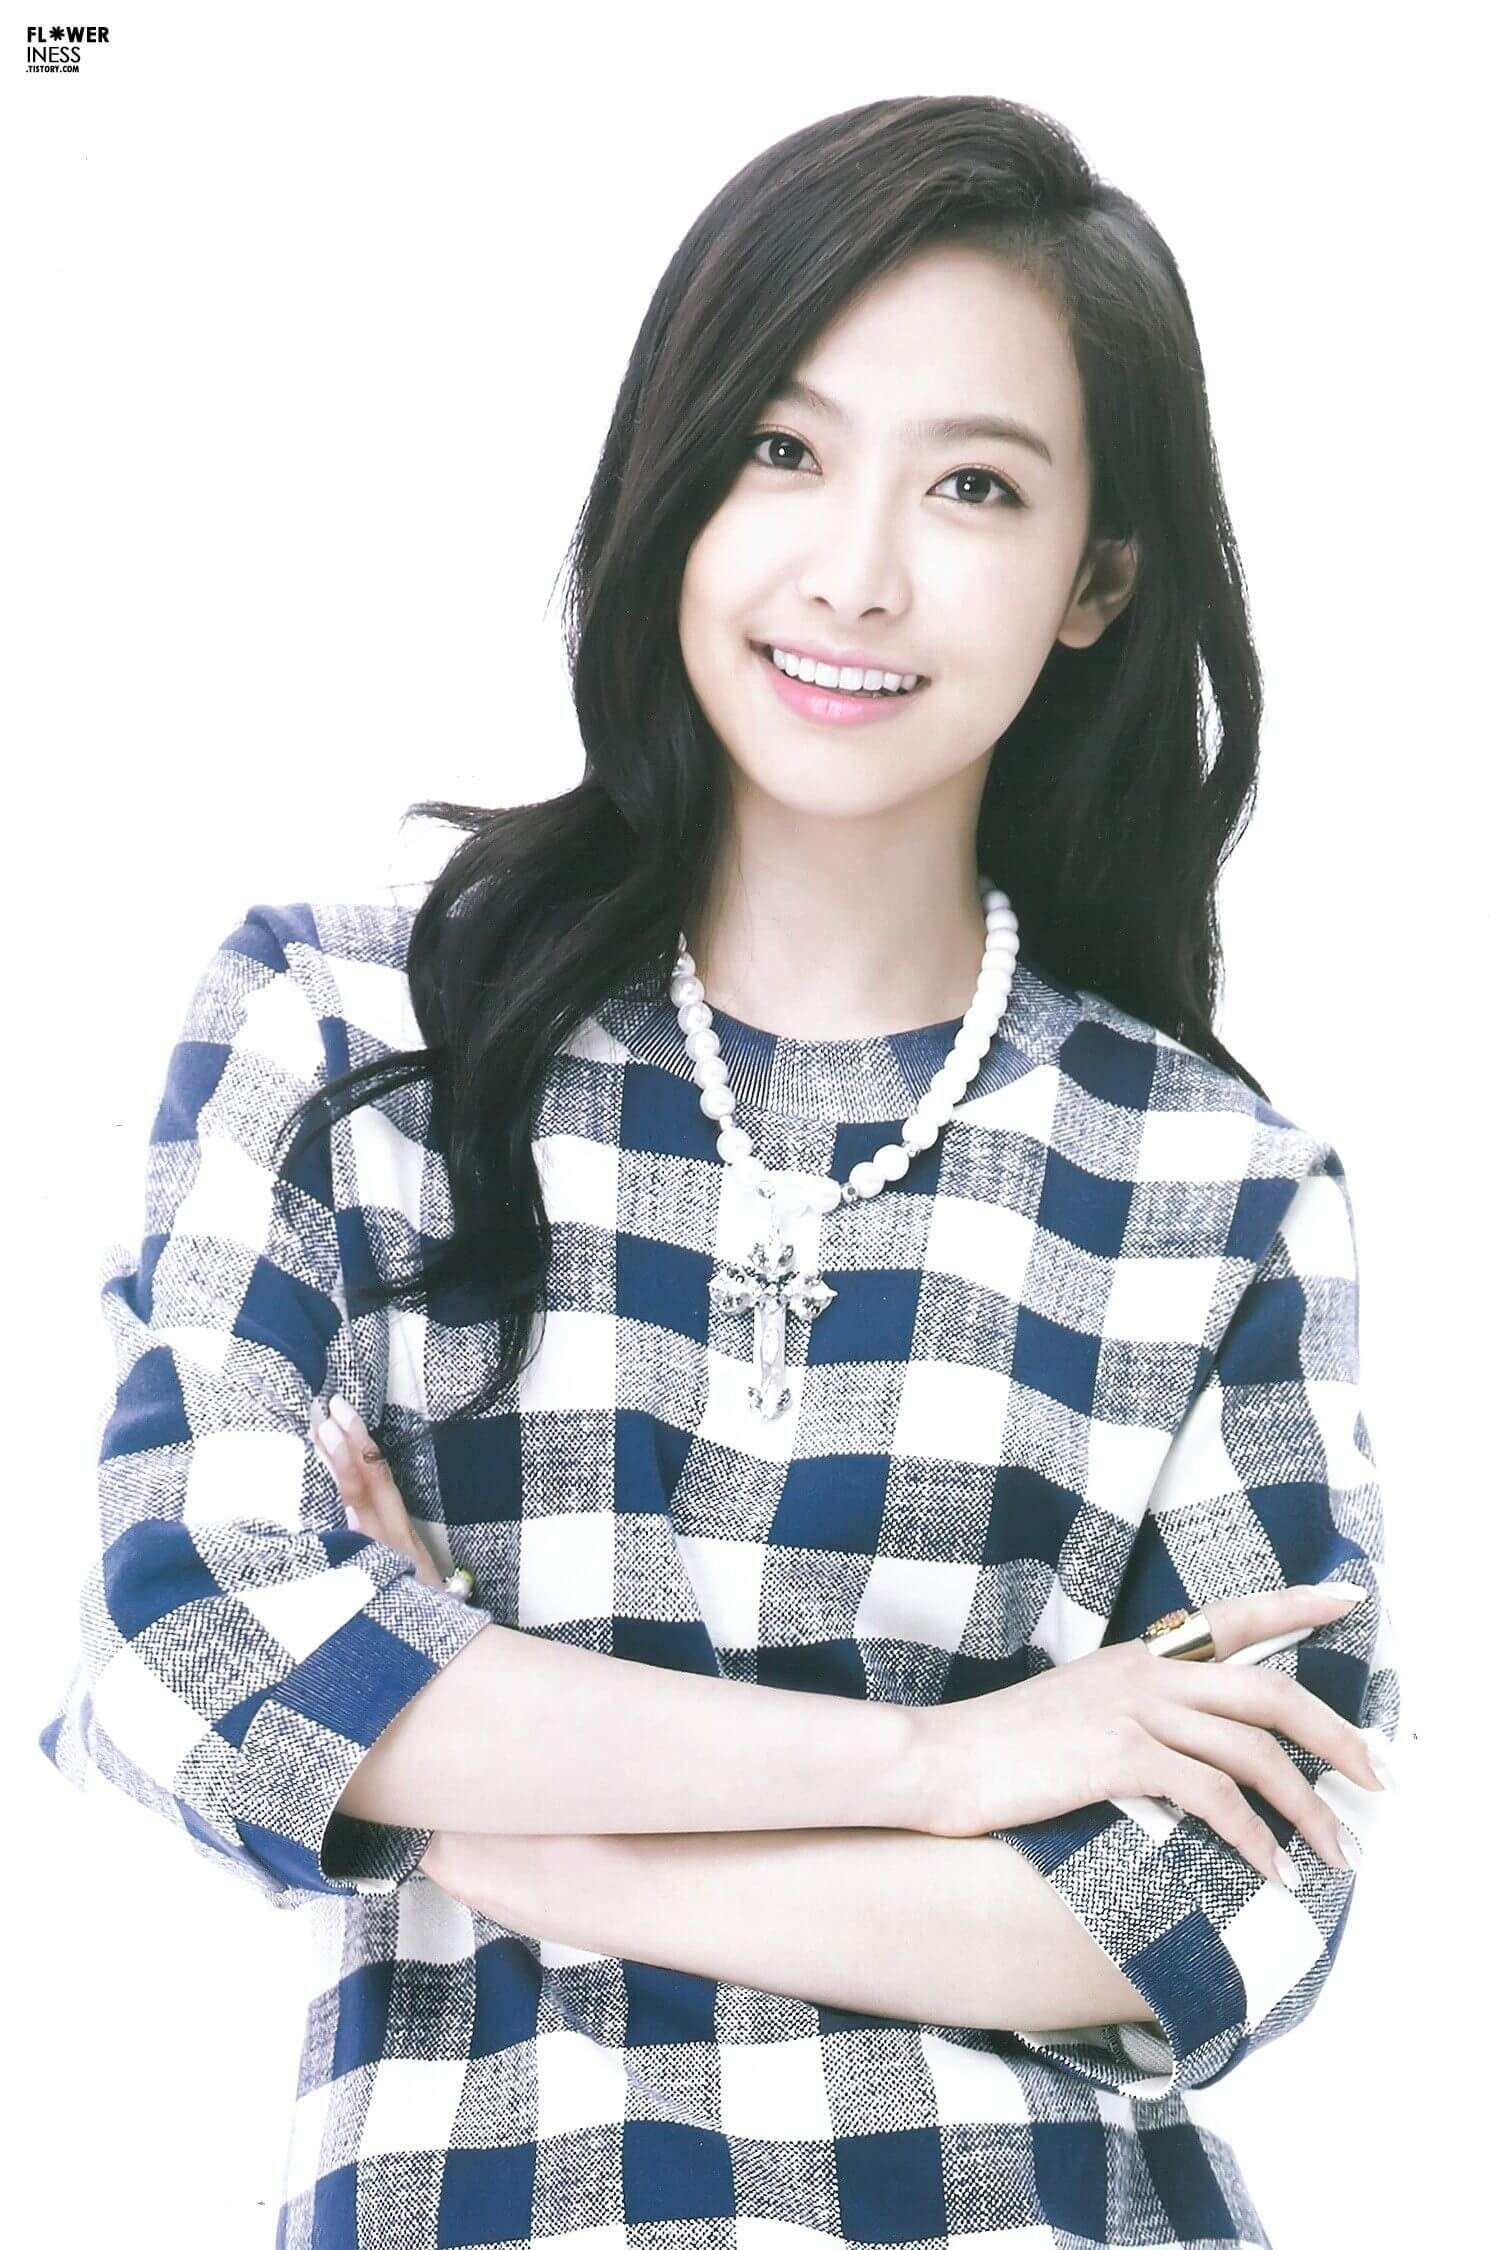 Victoria Song hot pic (2)